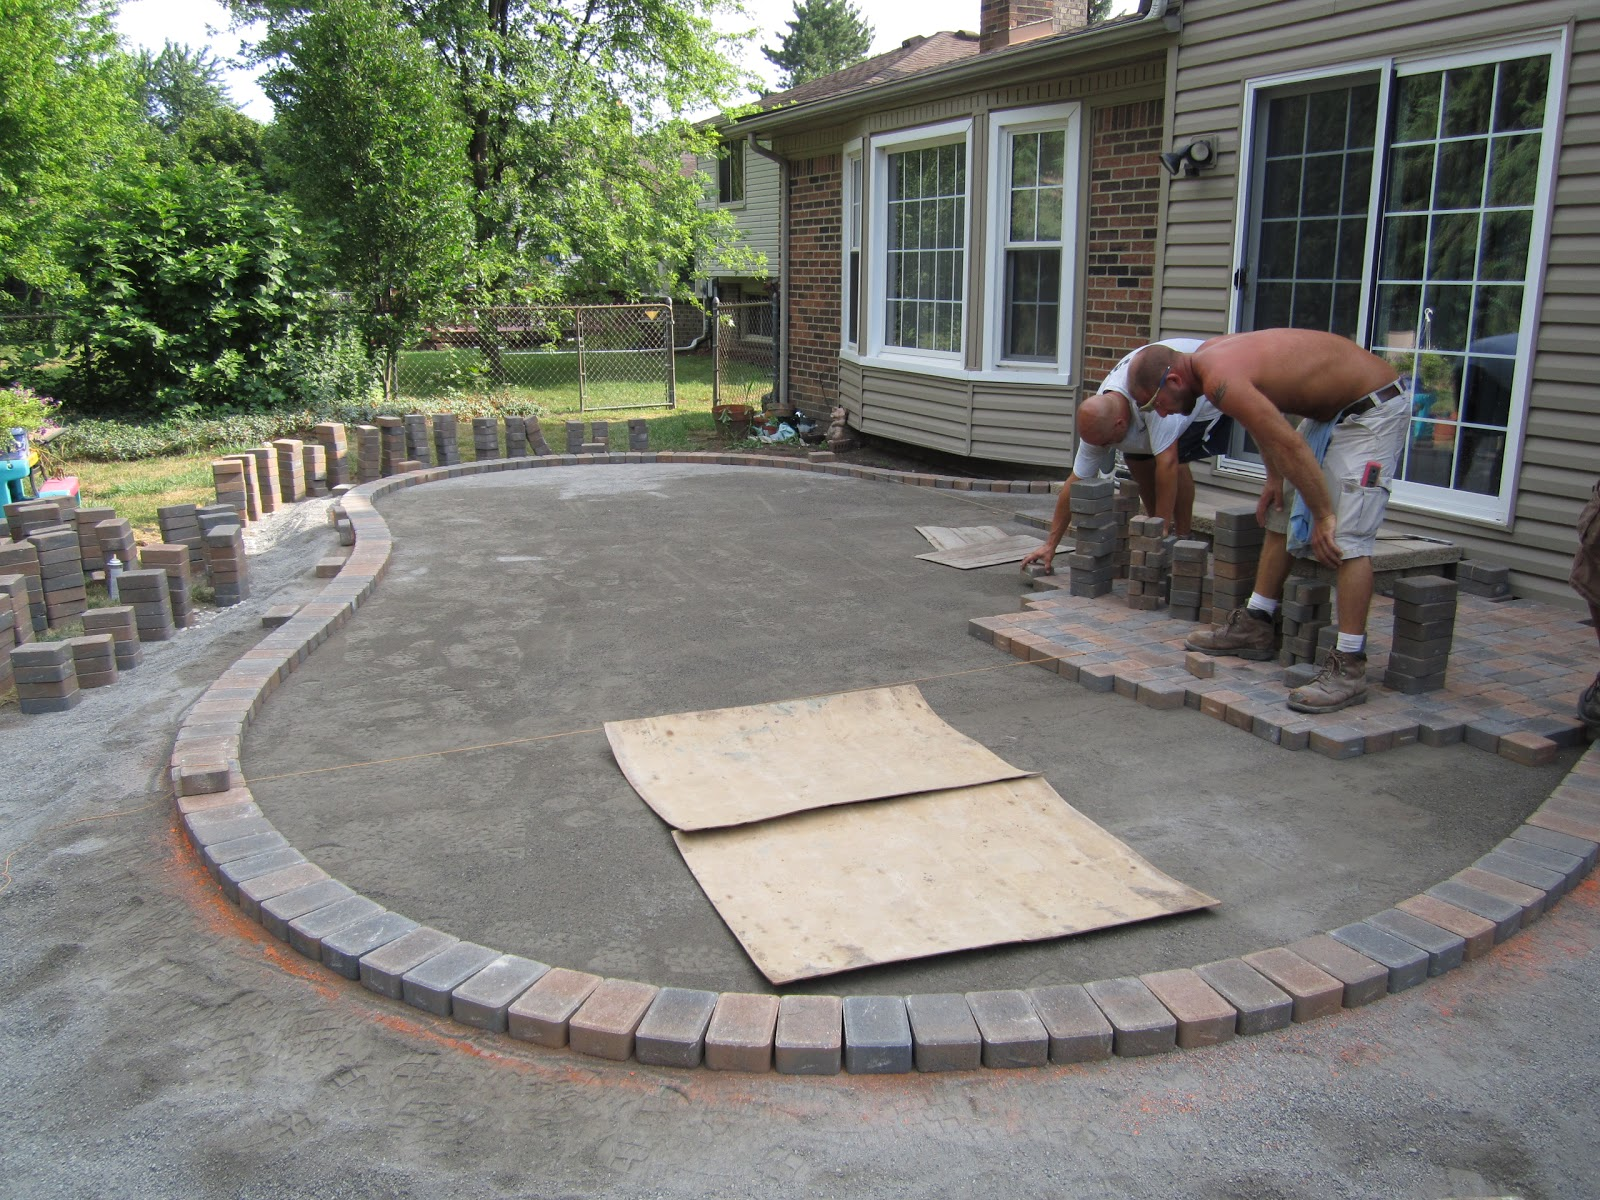 Brick Pavers,Canton,Ann Arbor,Plymouth,Patio,Patios,Repair ... on Brick Paver Patio Designs id=56174